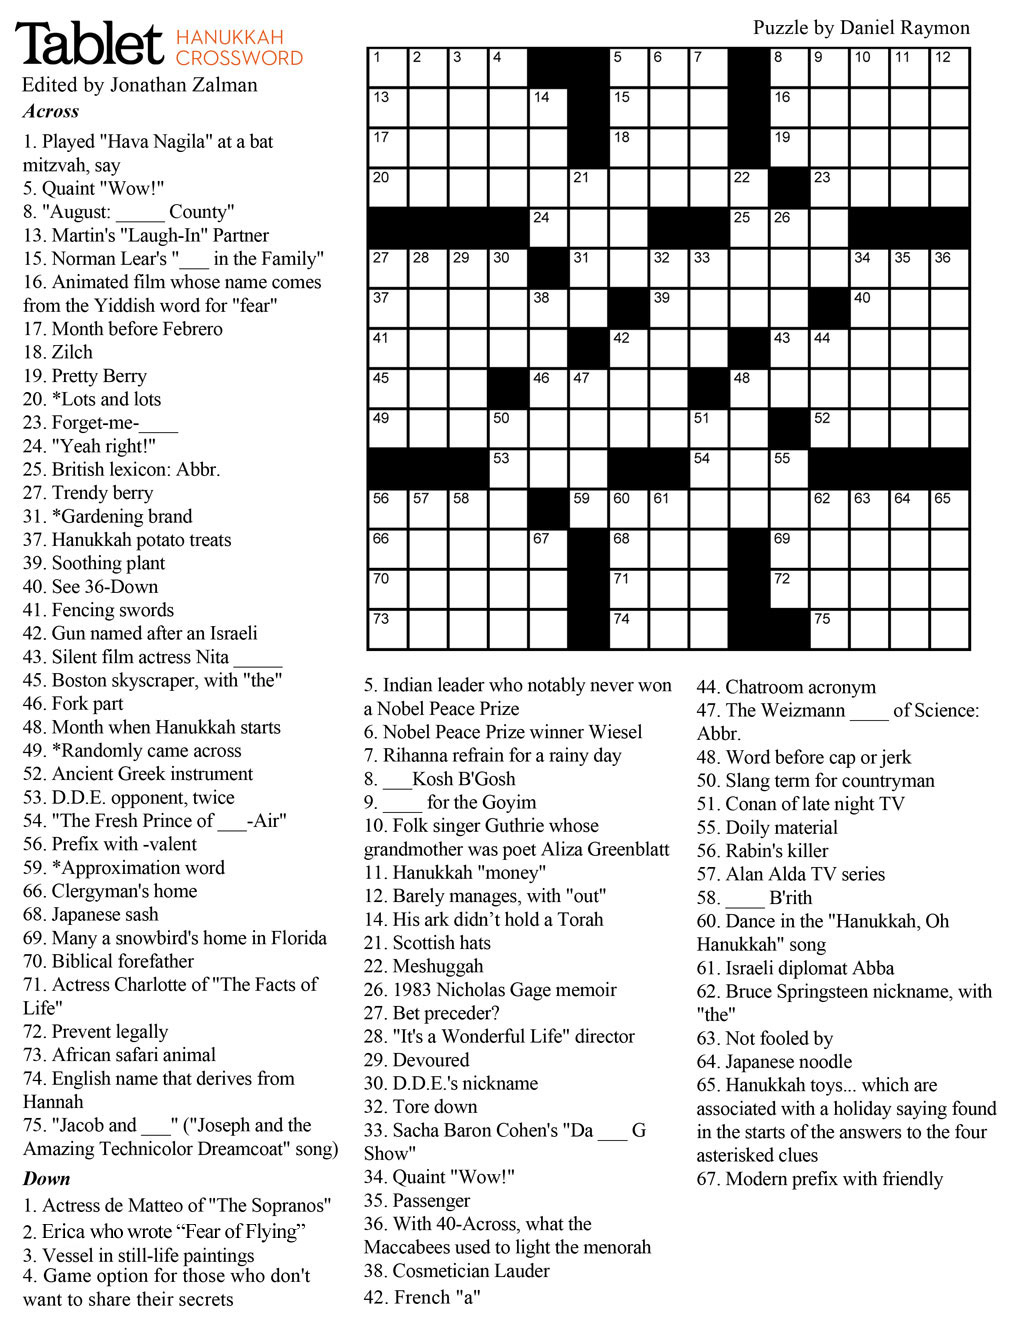 Wind Down With Our Hanukkah Crossword Puzzle! – Tablet Magazine - Printable Us History Crossword Puzzles